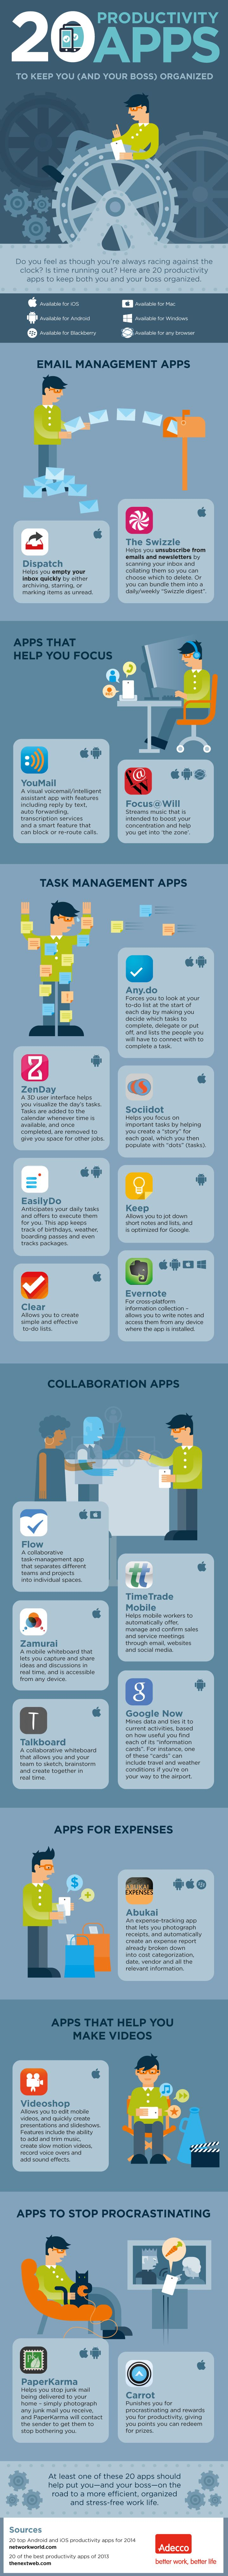 These Apps Will Help Make You More Productive